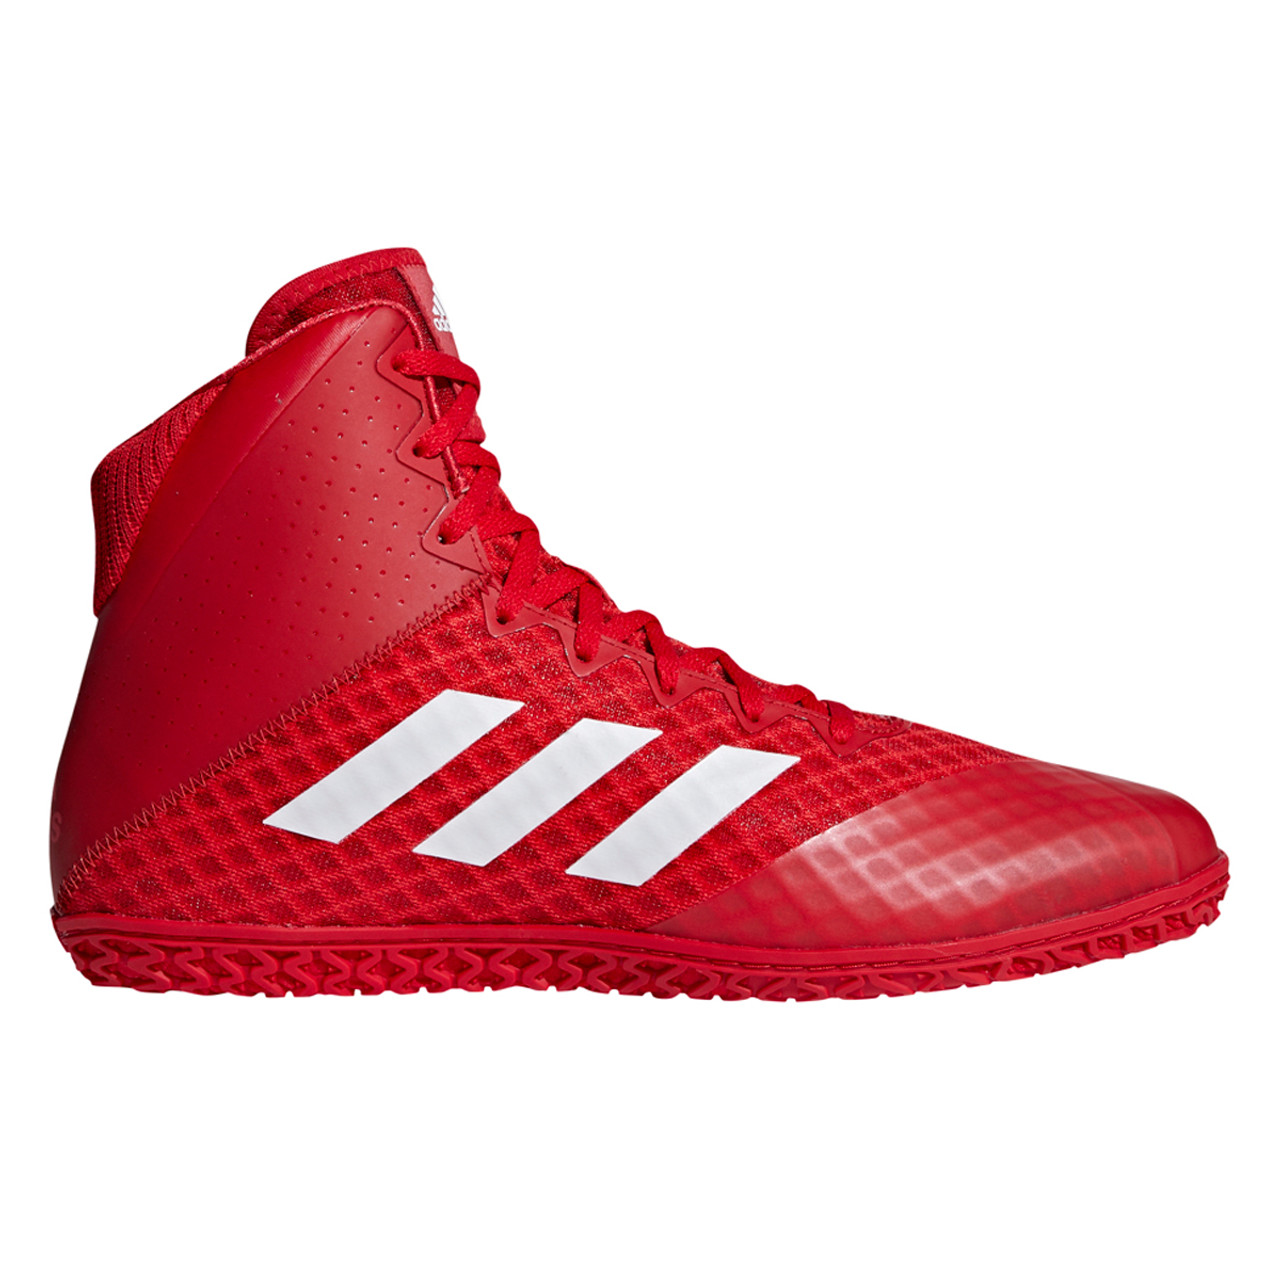 8ff1c53e42c9a9 Adidas Mat Wizard 4 Men s Wrestling Shoes AC6972 - Red